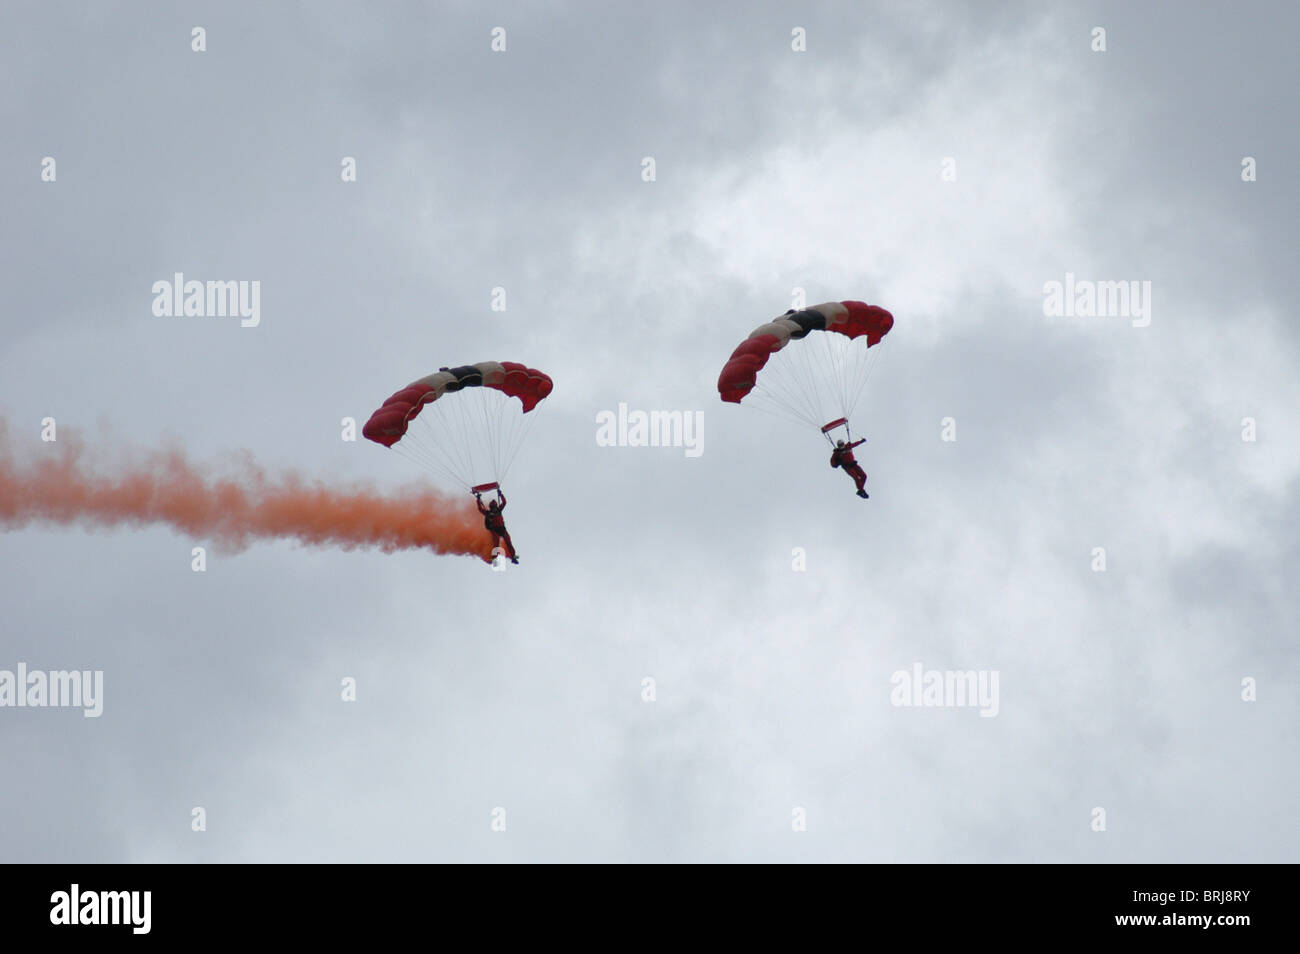 Red Devils Parachuting Team - Stock Image